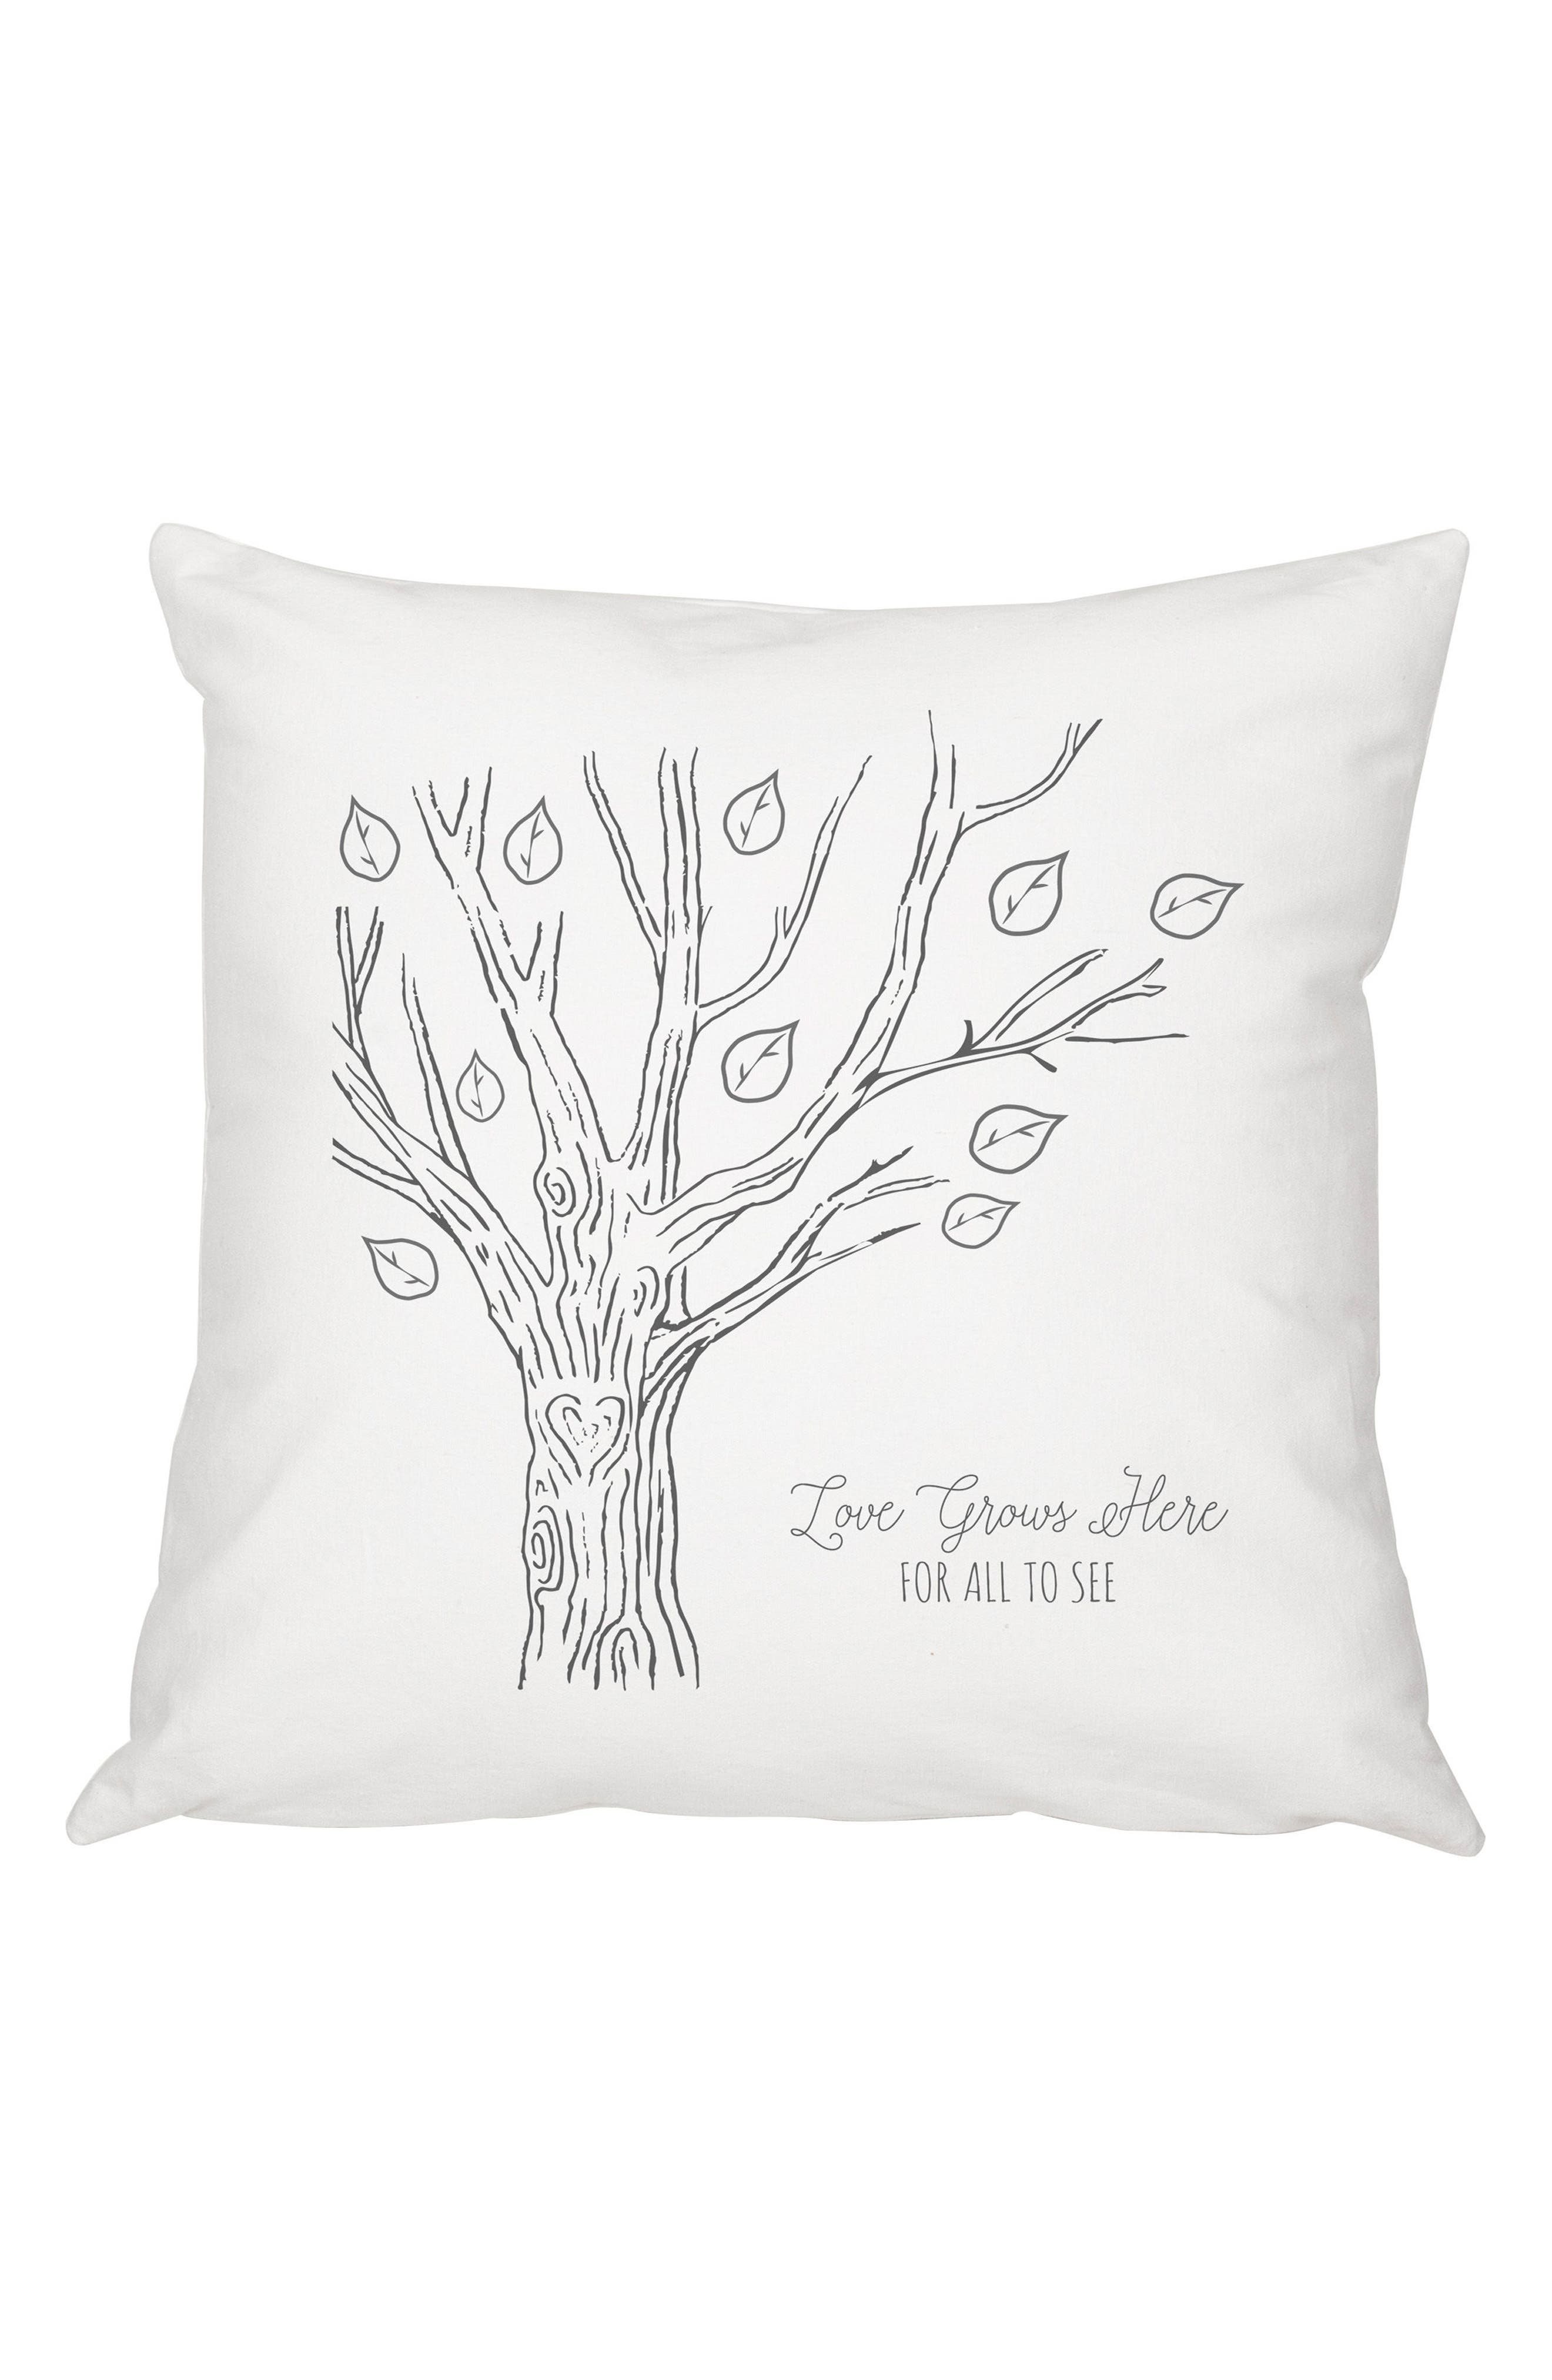 Family Tree Accent Pillow,                             Main thumbnail 1, color,                             001